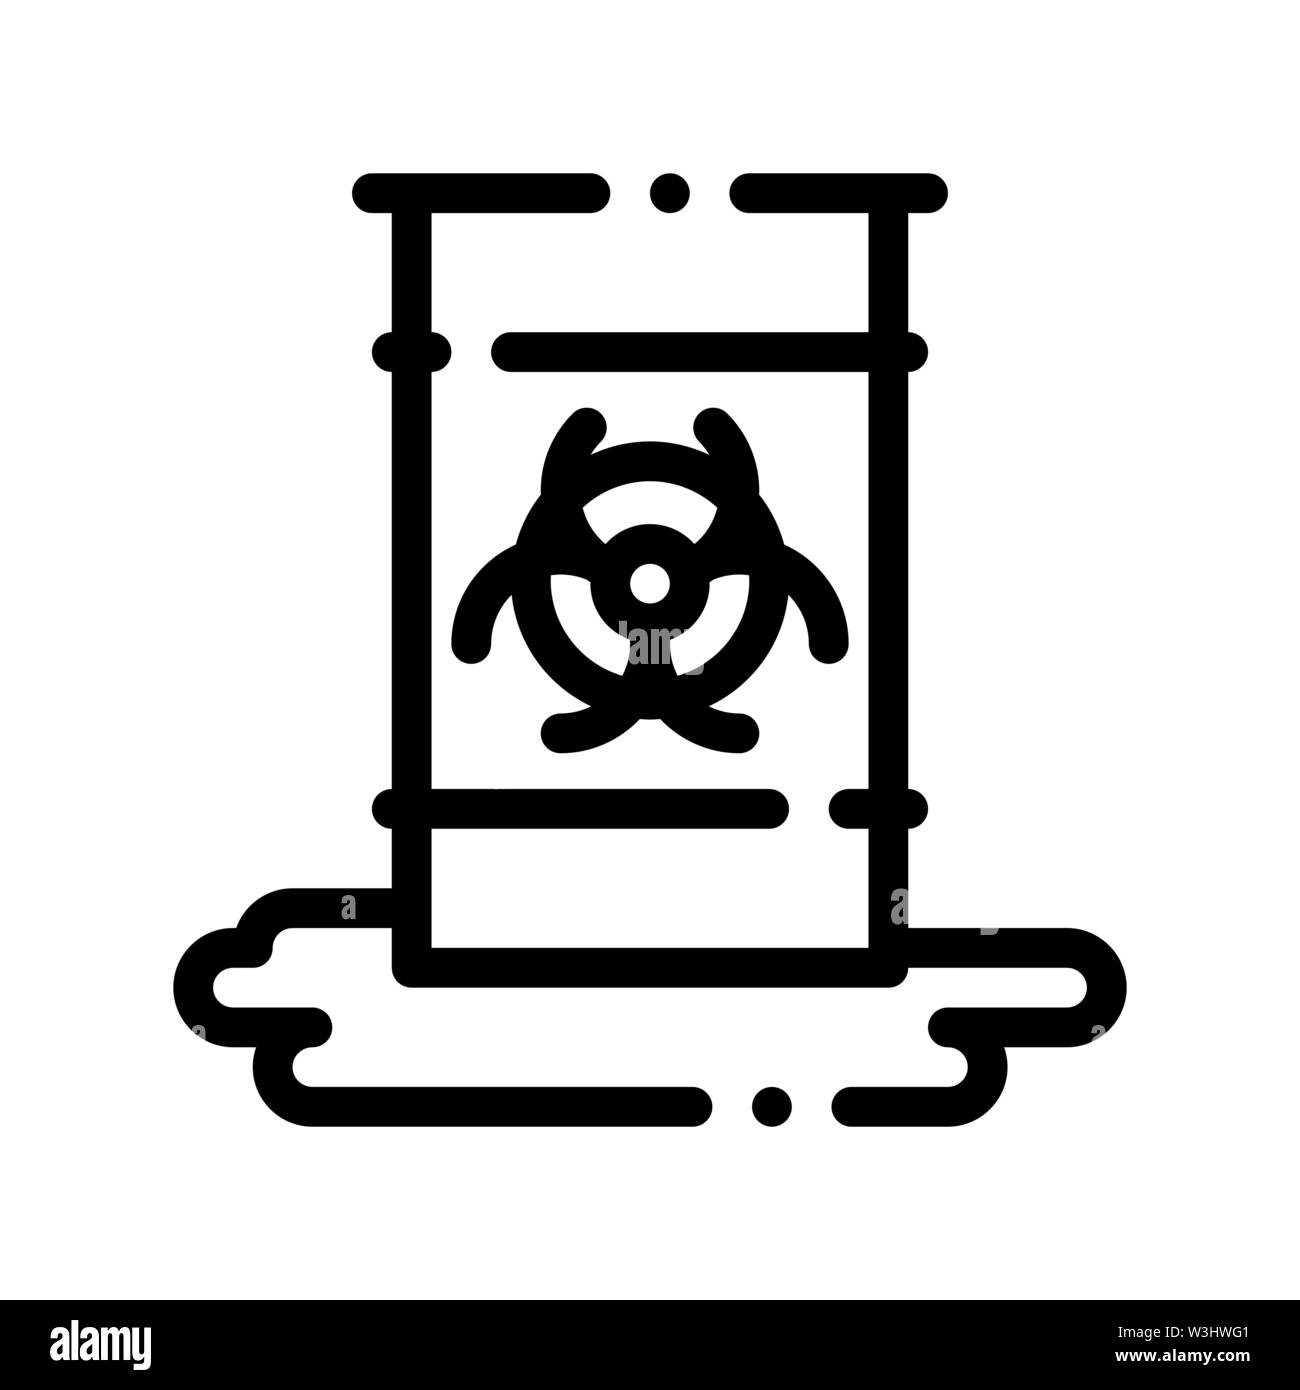 Nuclear Waste Container Vector Thin Line Icon - Stock Image